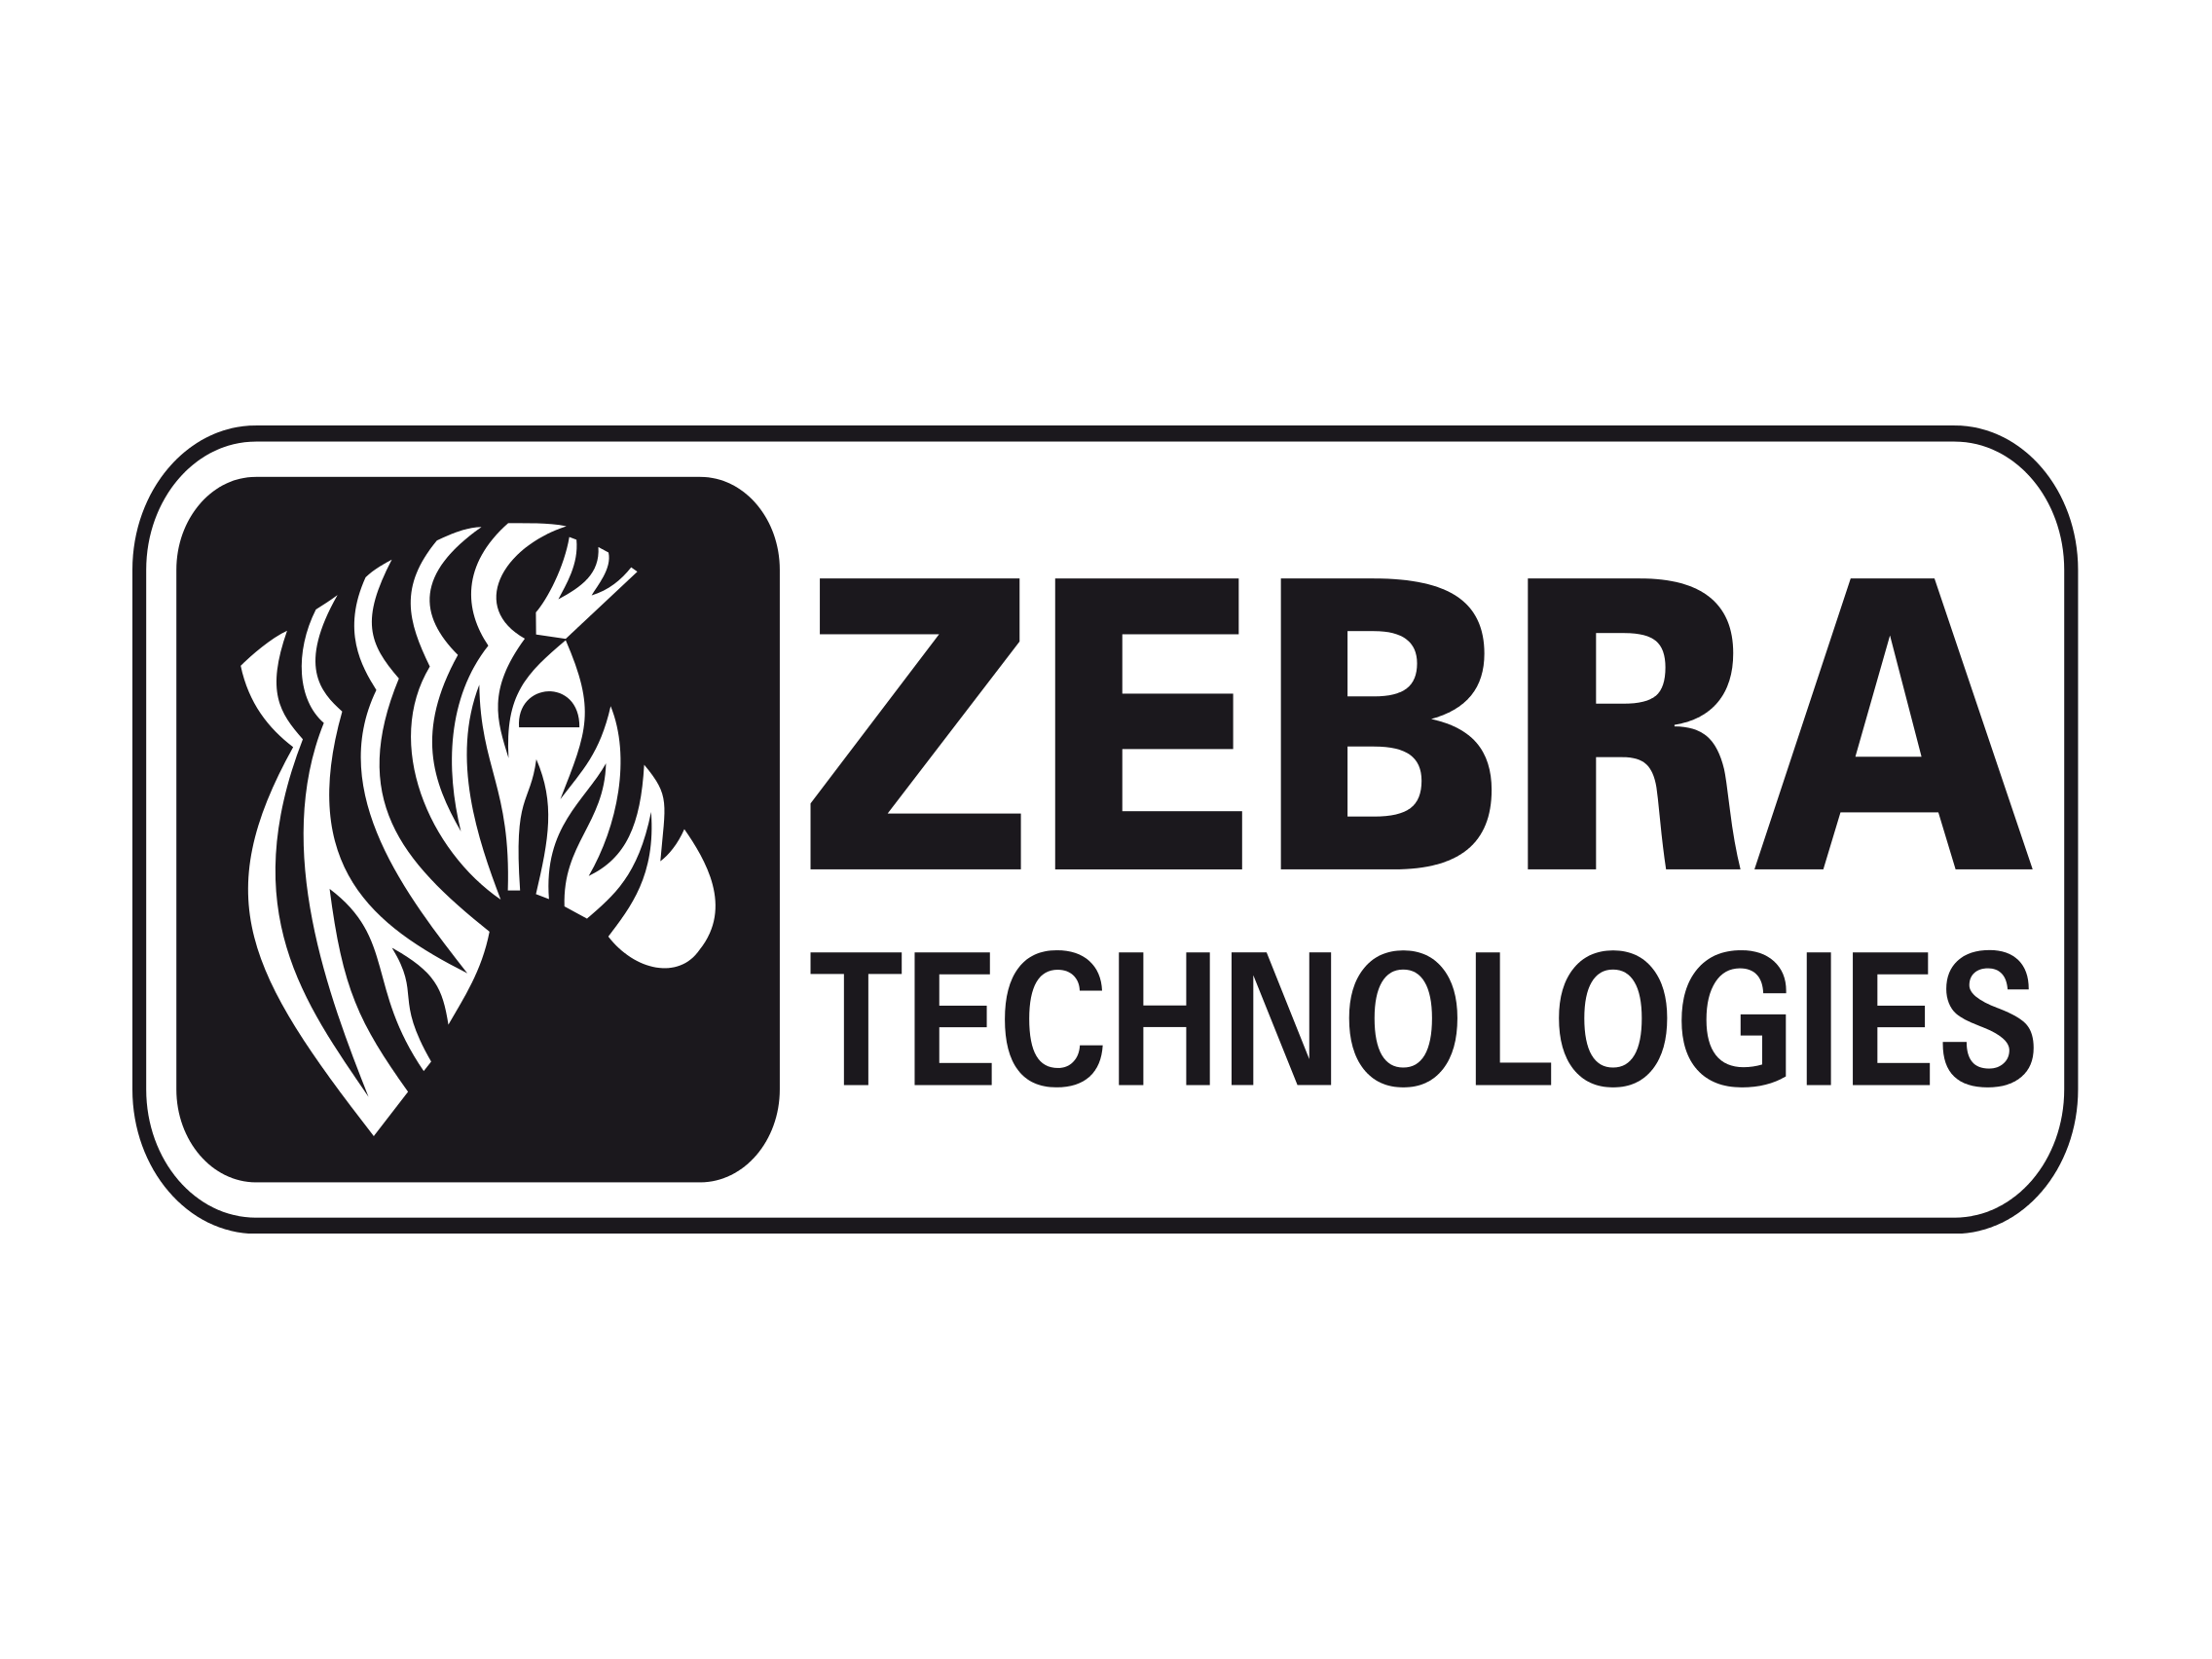 zebra technologies corporation nasdaq zbra a global leader in providing solutions and services that give enterprises real time visibility into their